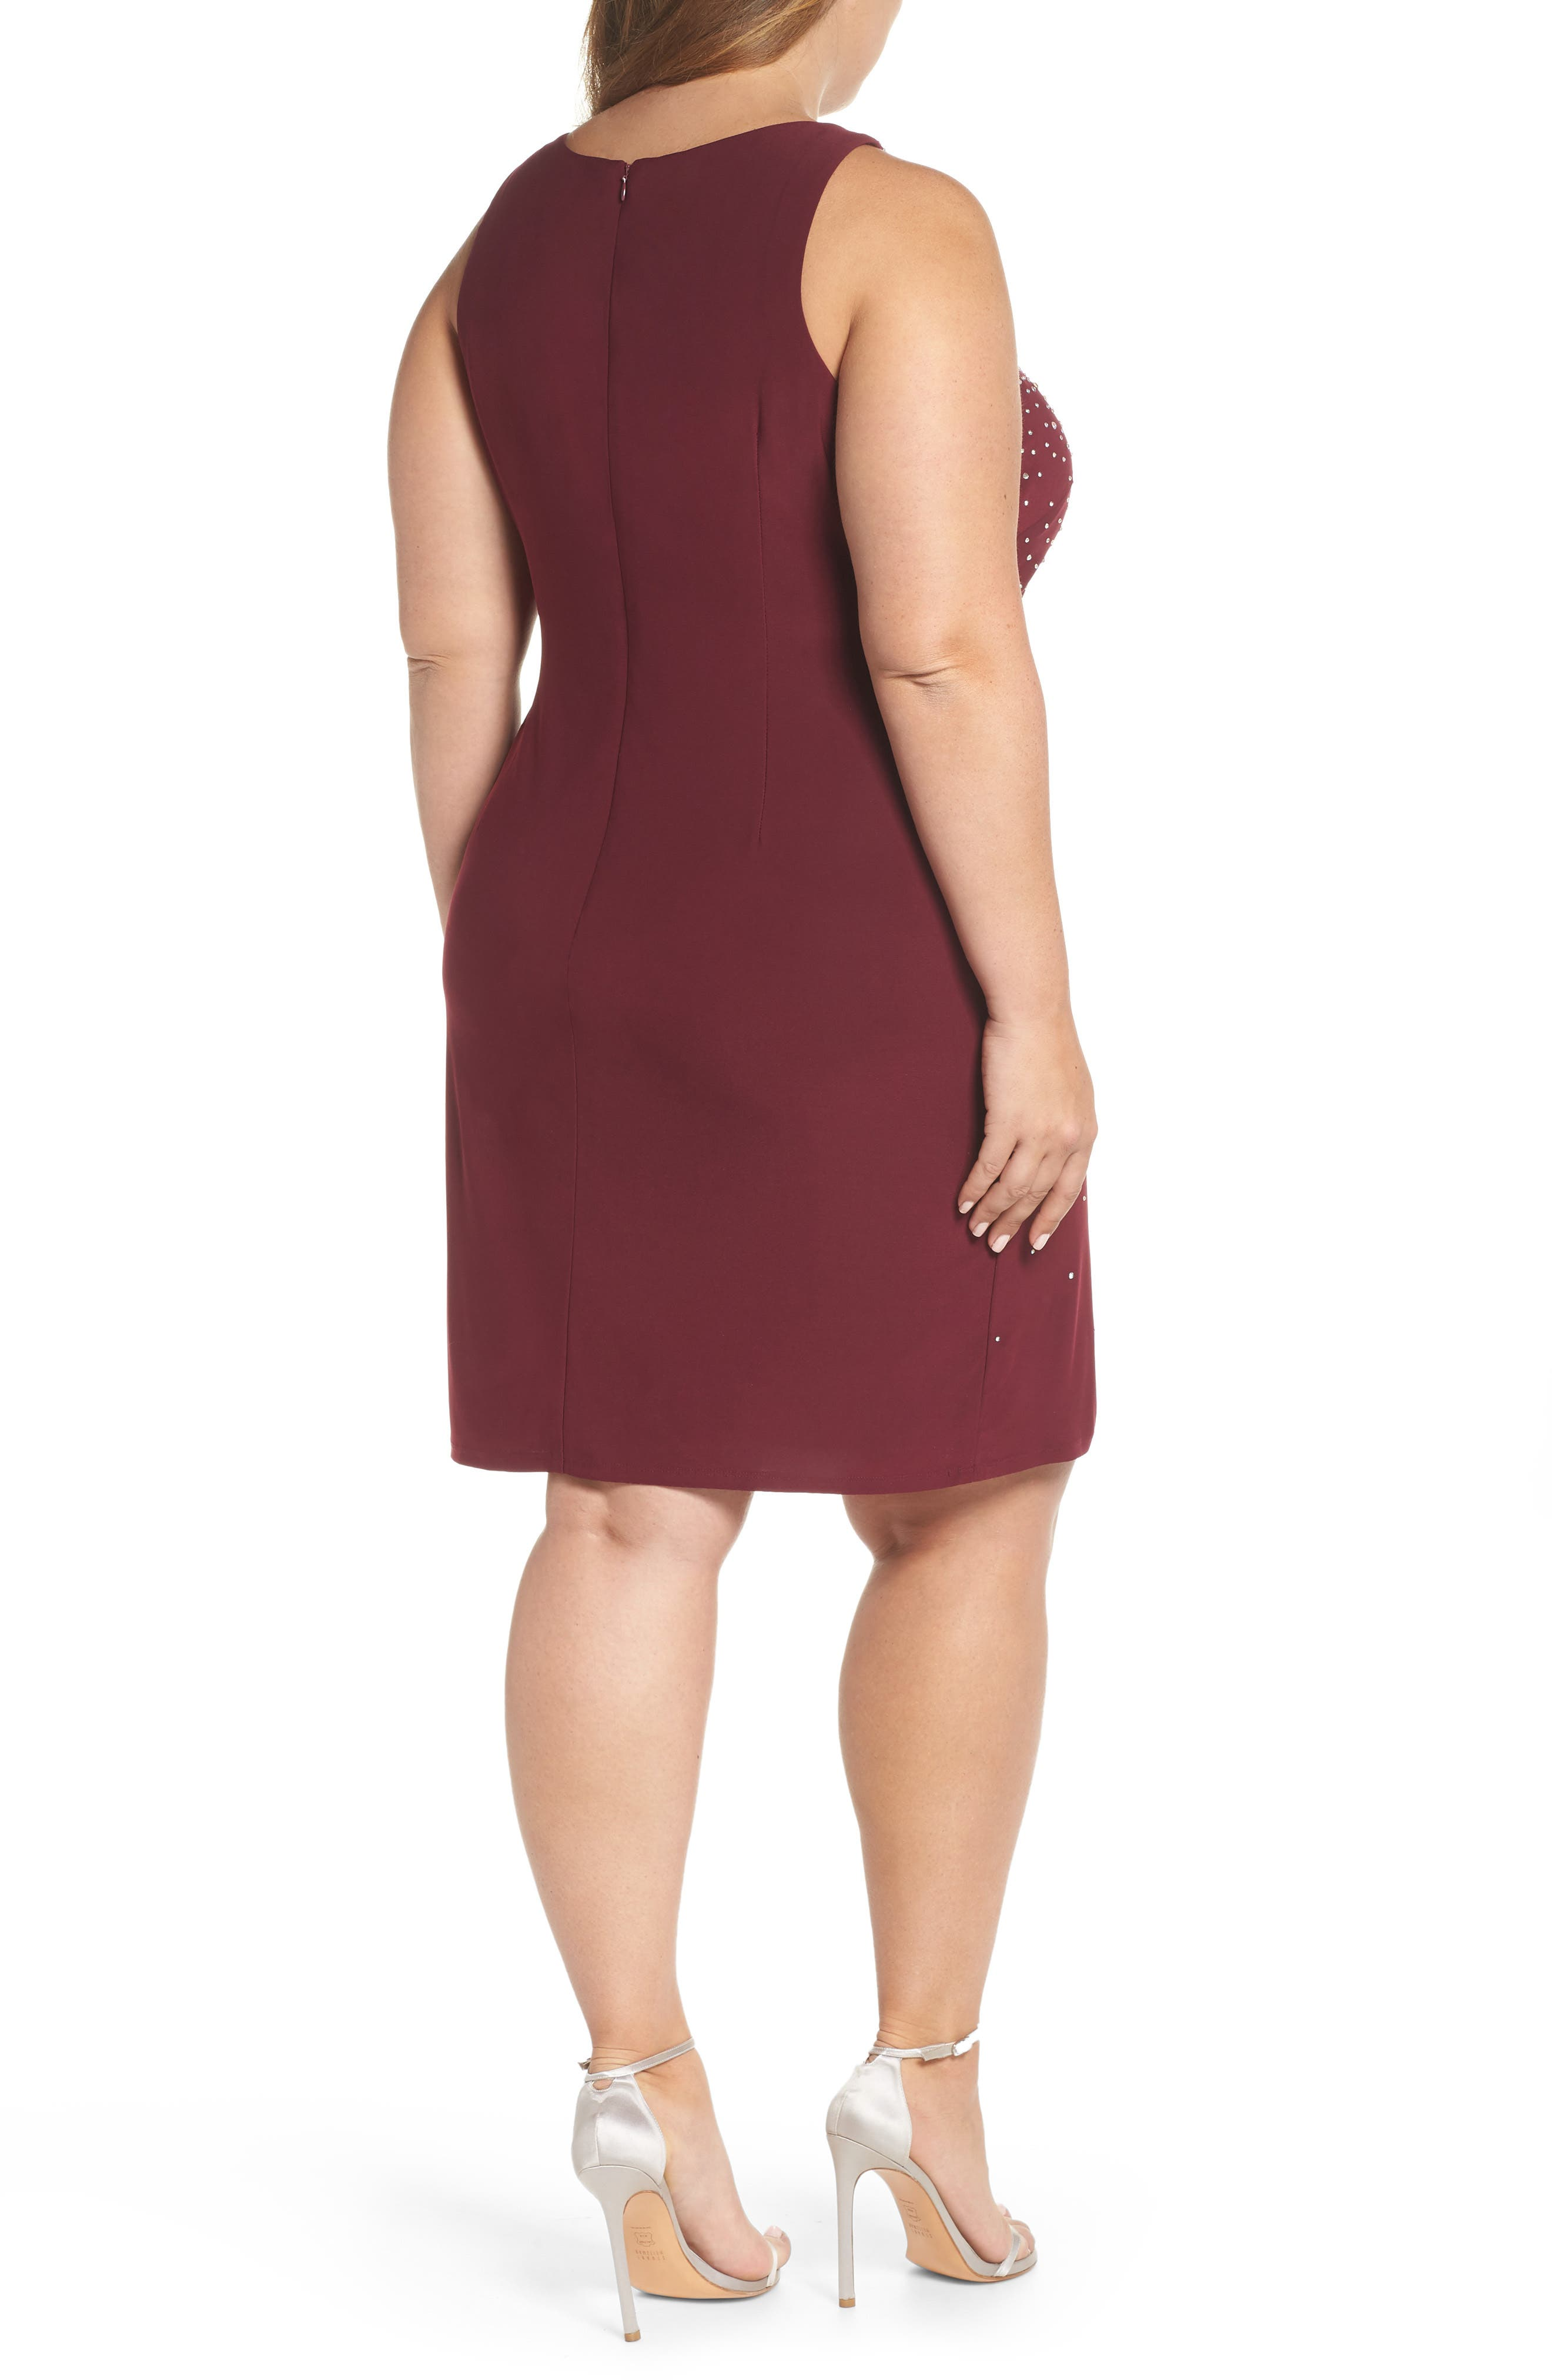 MORGAN & CO., Embellished Keyhole Neck Sheath Dress, Alternate thumbnail 2, color, MERLOT